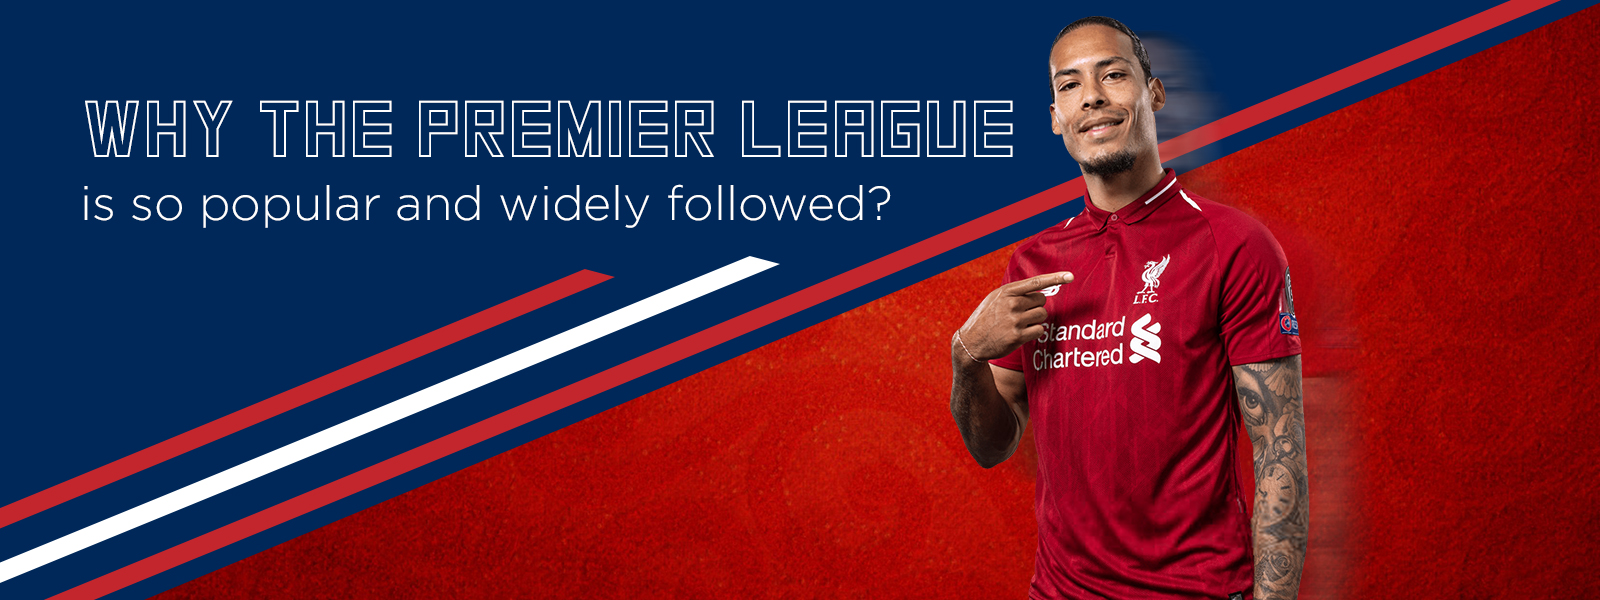 Why The Premier League Is So Popular And Widely Followed?